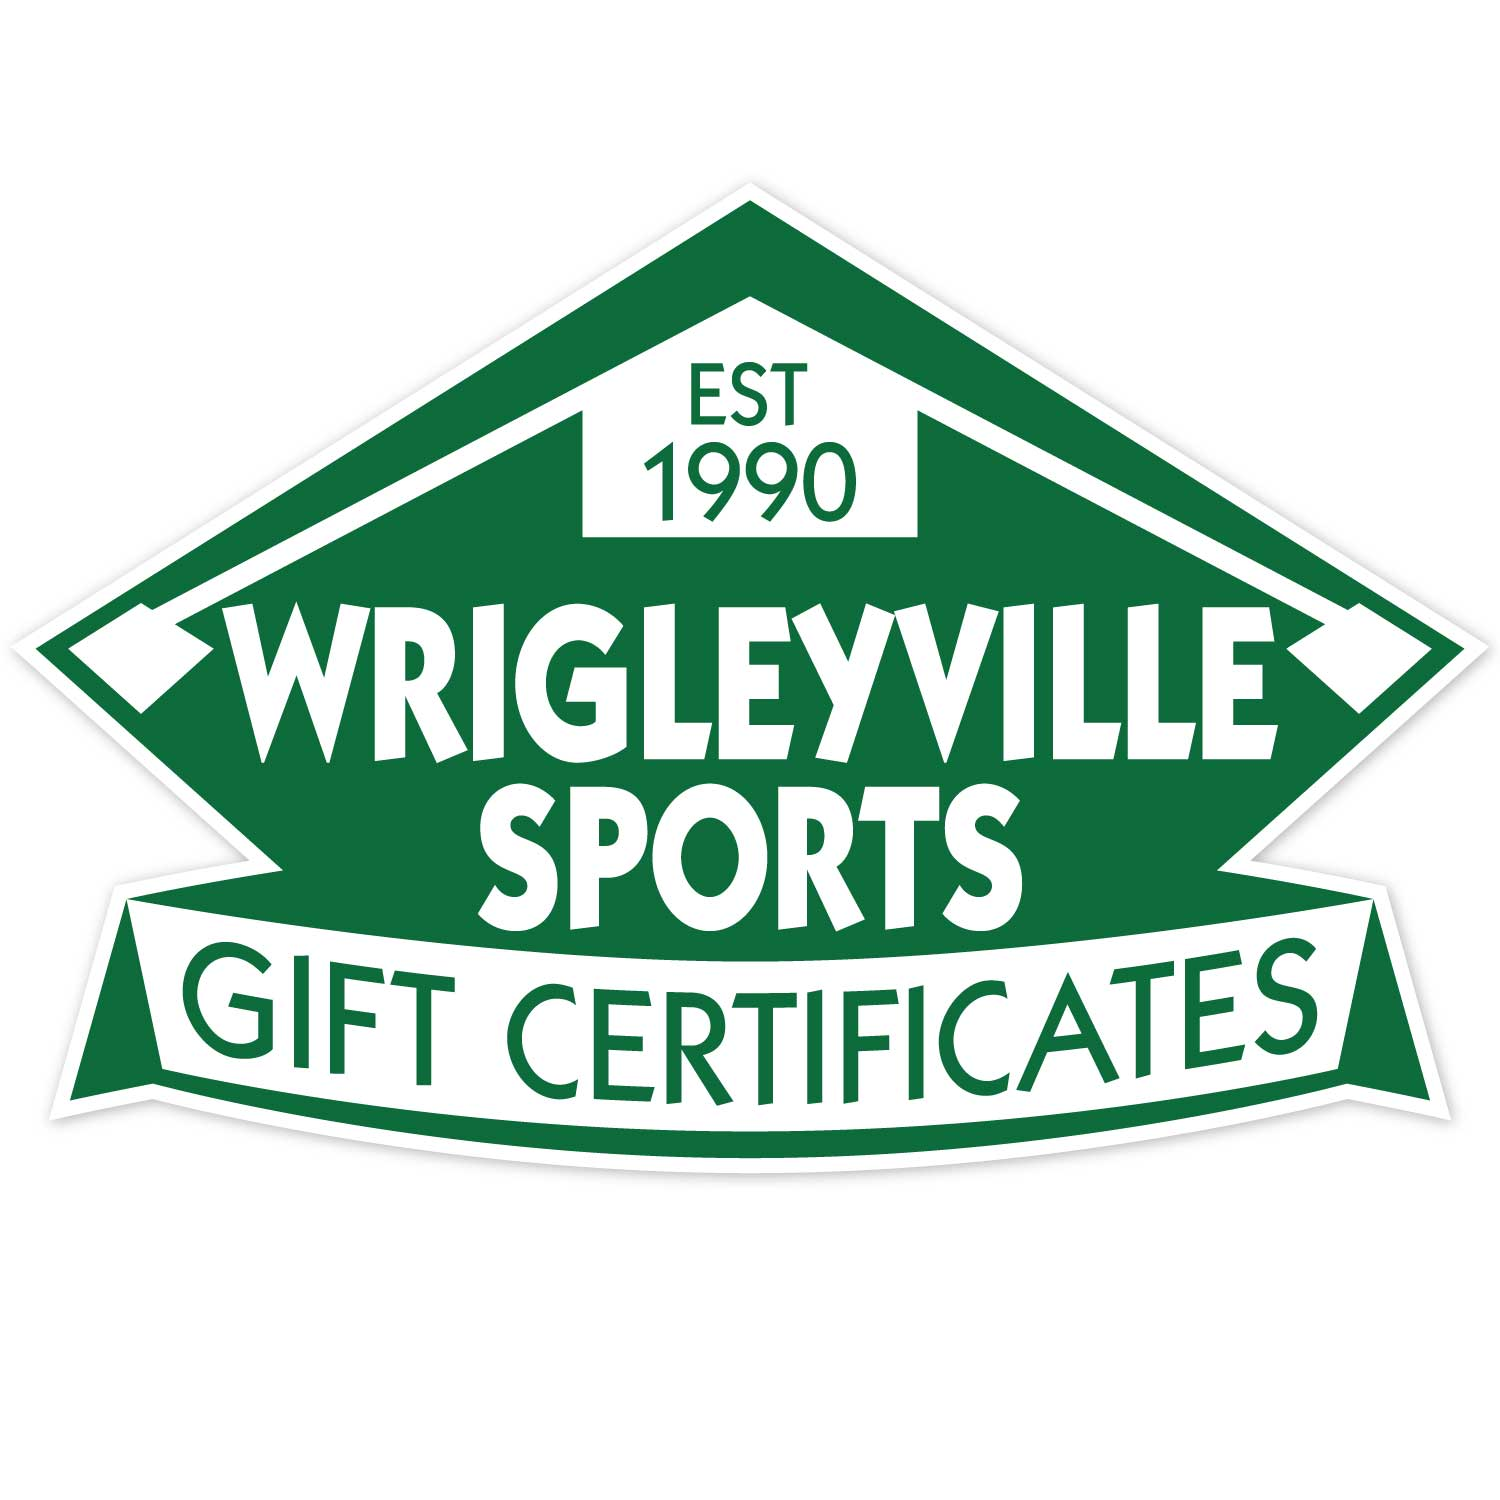 Wrigleyville Sports Gift Certificate